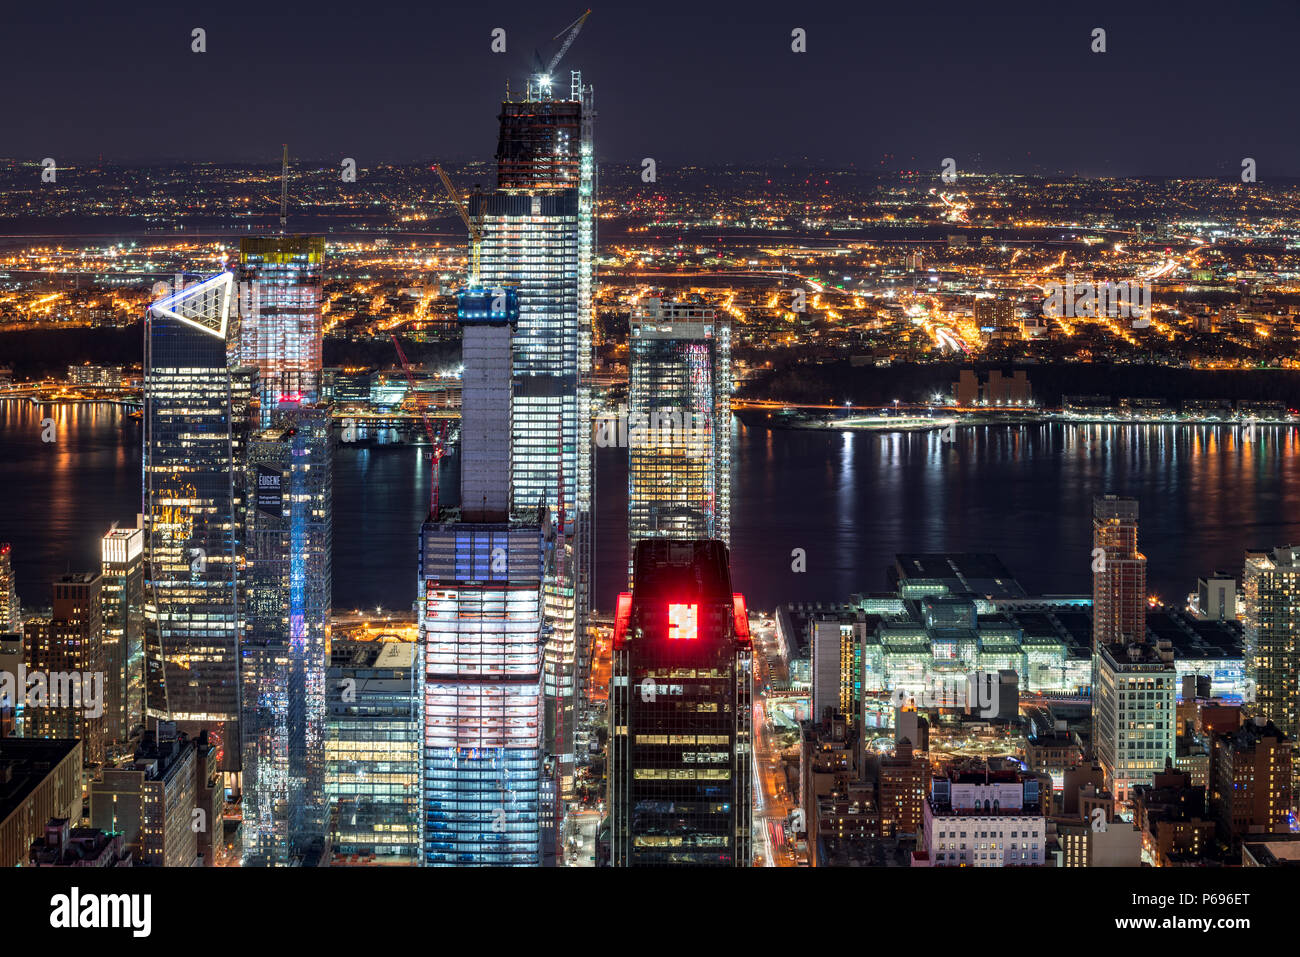 New York City, NY, USA - Mach 11, 2018: Night aerial view of Hudson Yards skyscrapers under contruction with the Hudson River. Chelsea, Manhattan - Stock Image